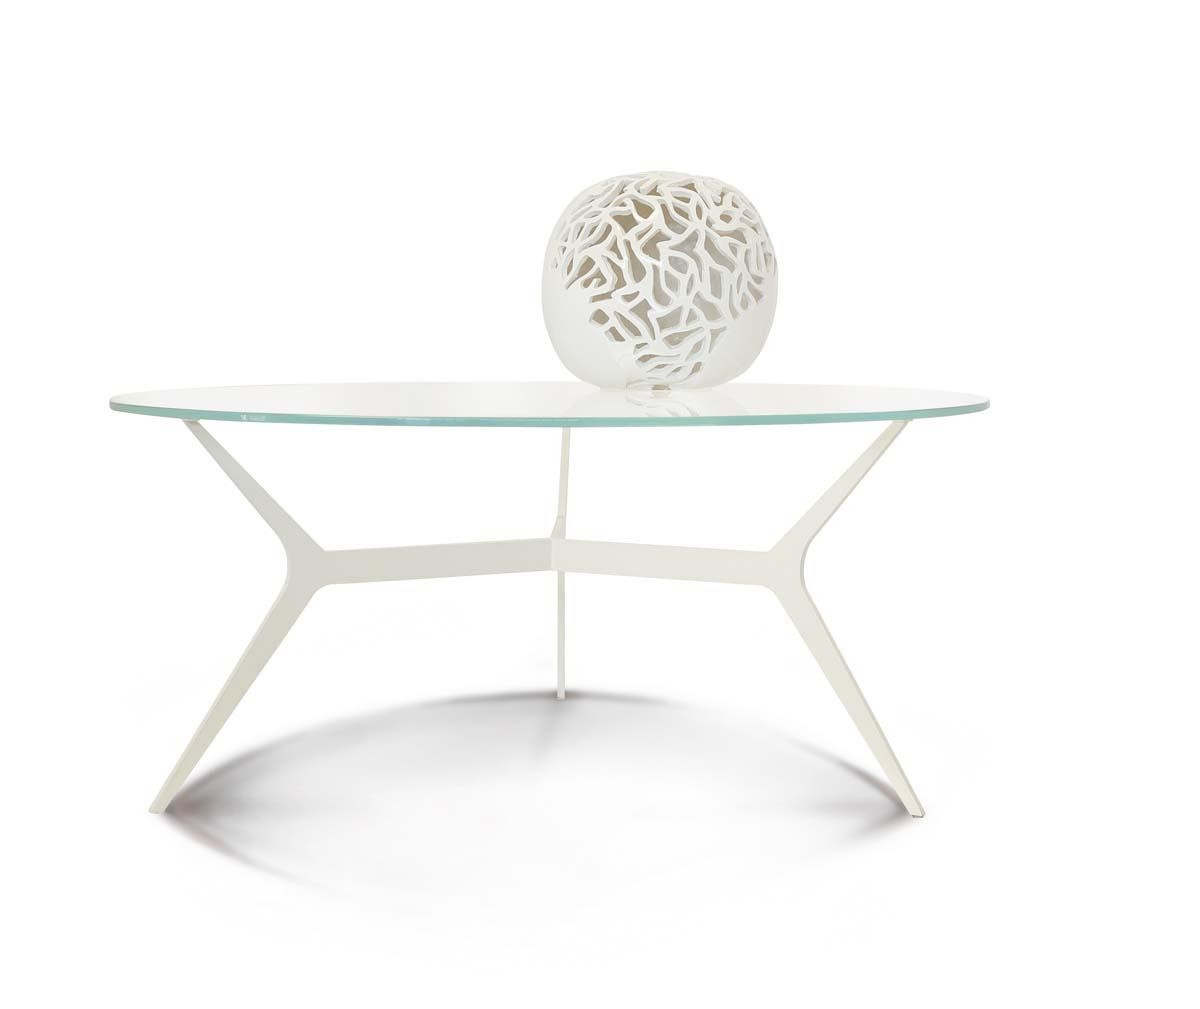 contemporary tables and chairs italy top design arturo